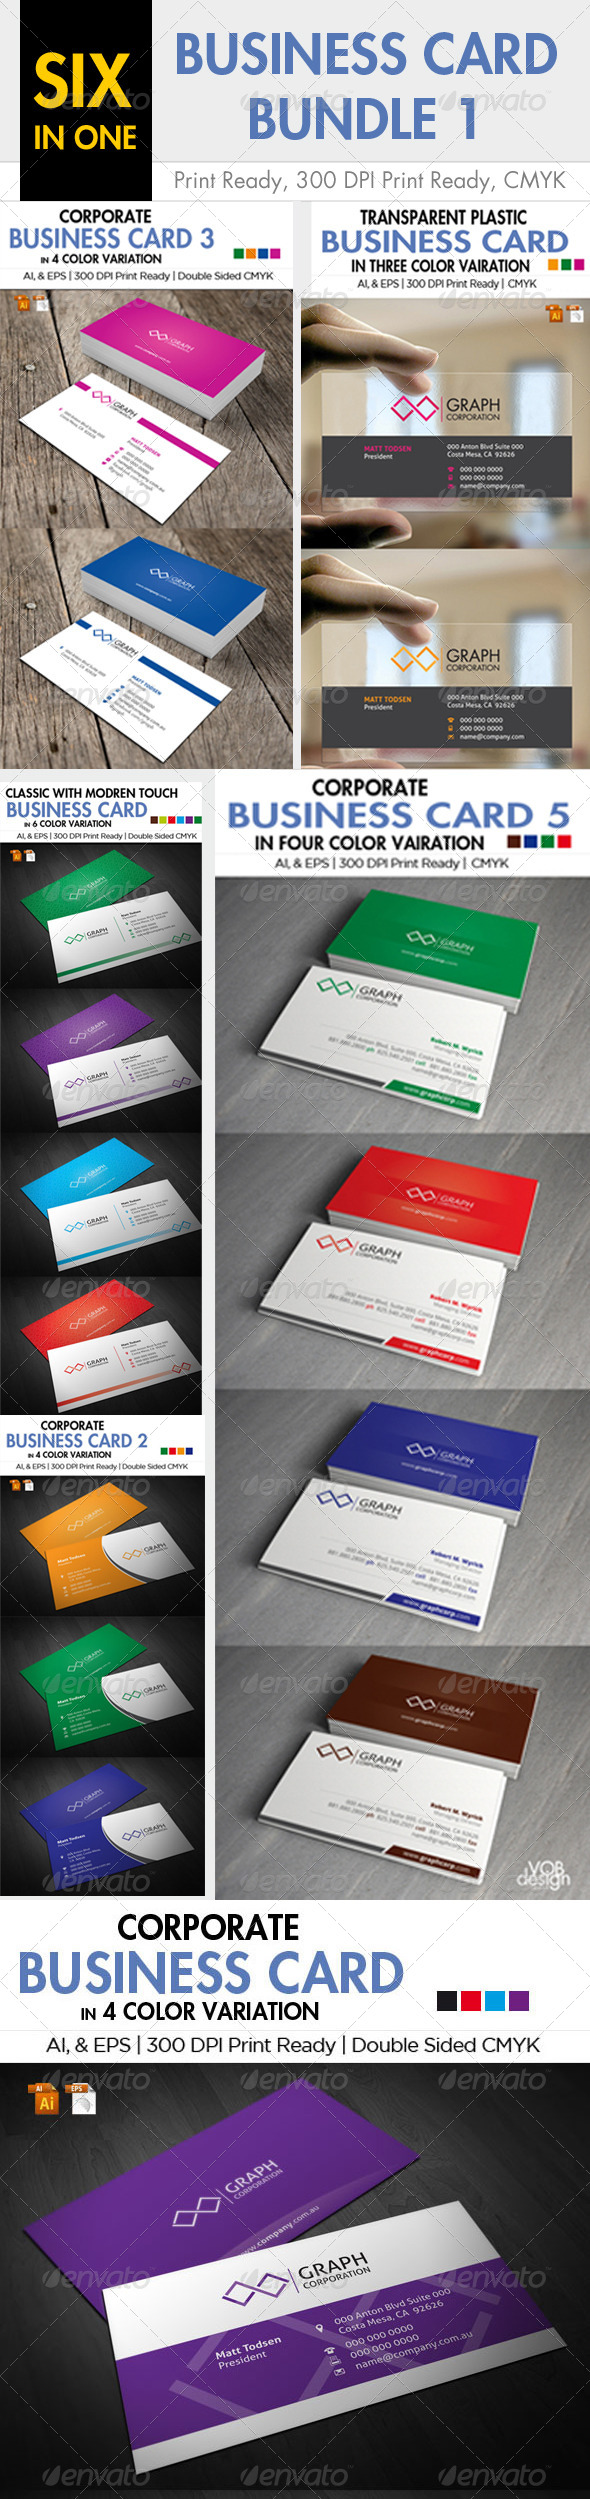 GraphicRiver 6 in one Business Card Bundle 1 6356540